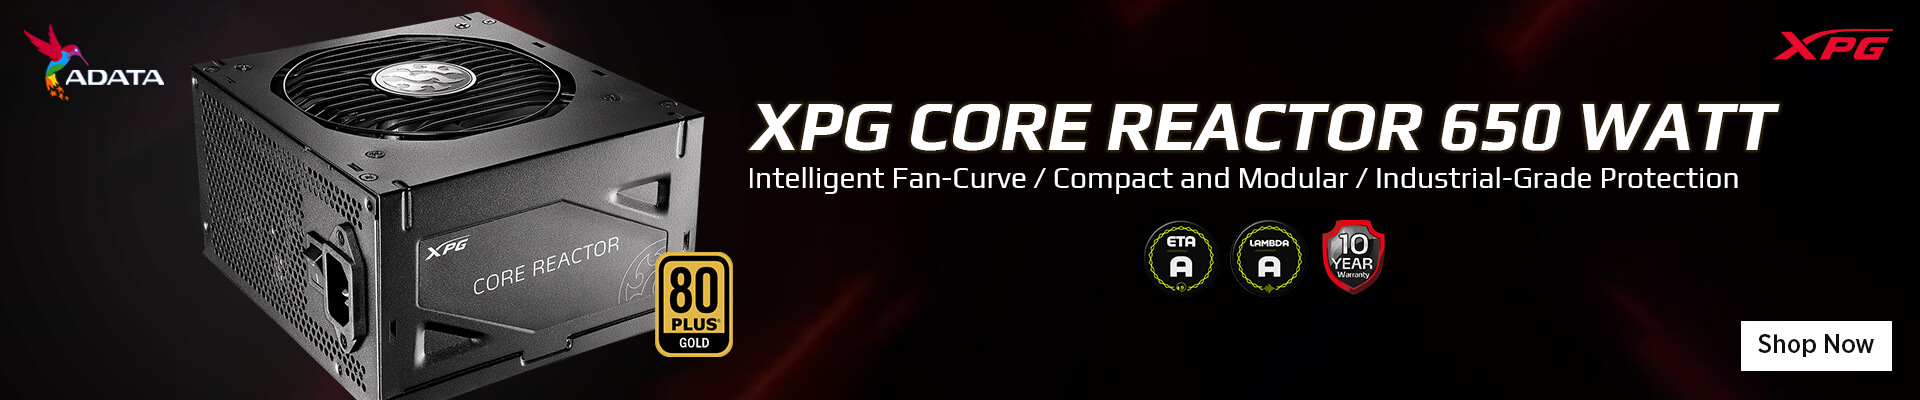 Adata XPG Core Reactor 650 Watt 80 Plus Gold SMPS